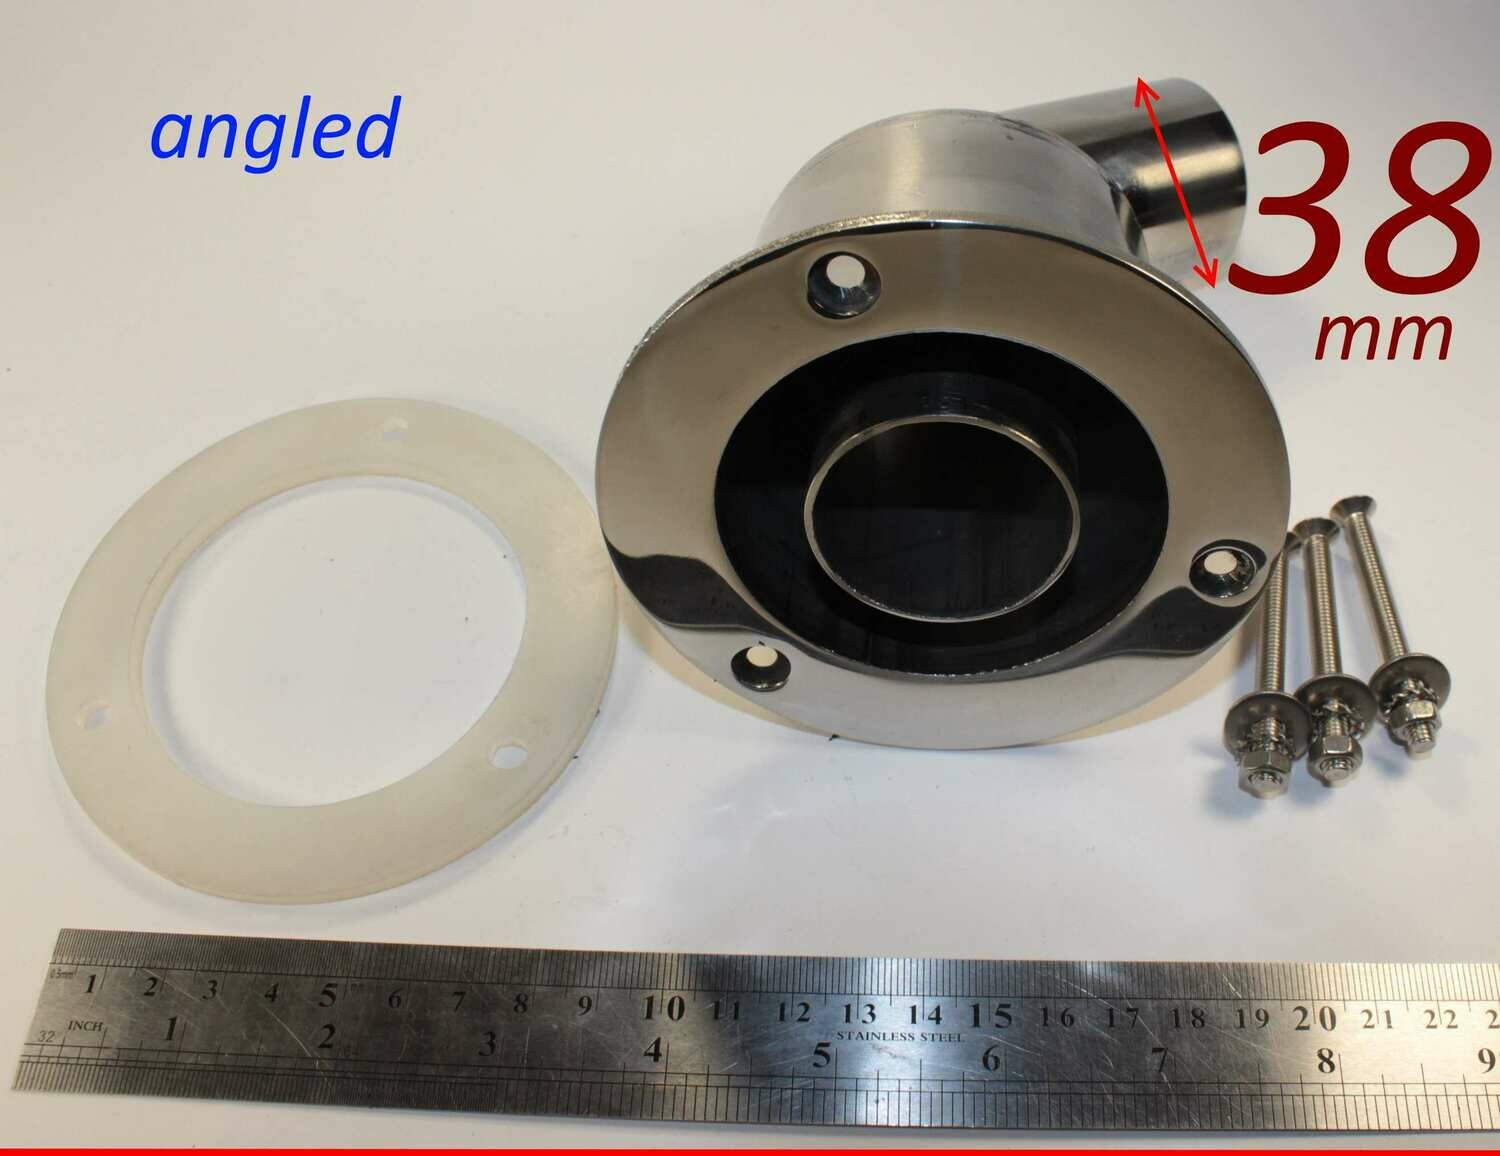 Exhaust thru hull outlet / skin fitting 38mm (angled marine stainless steel)